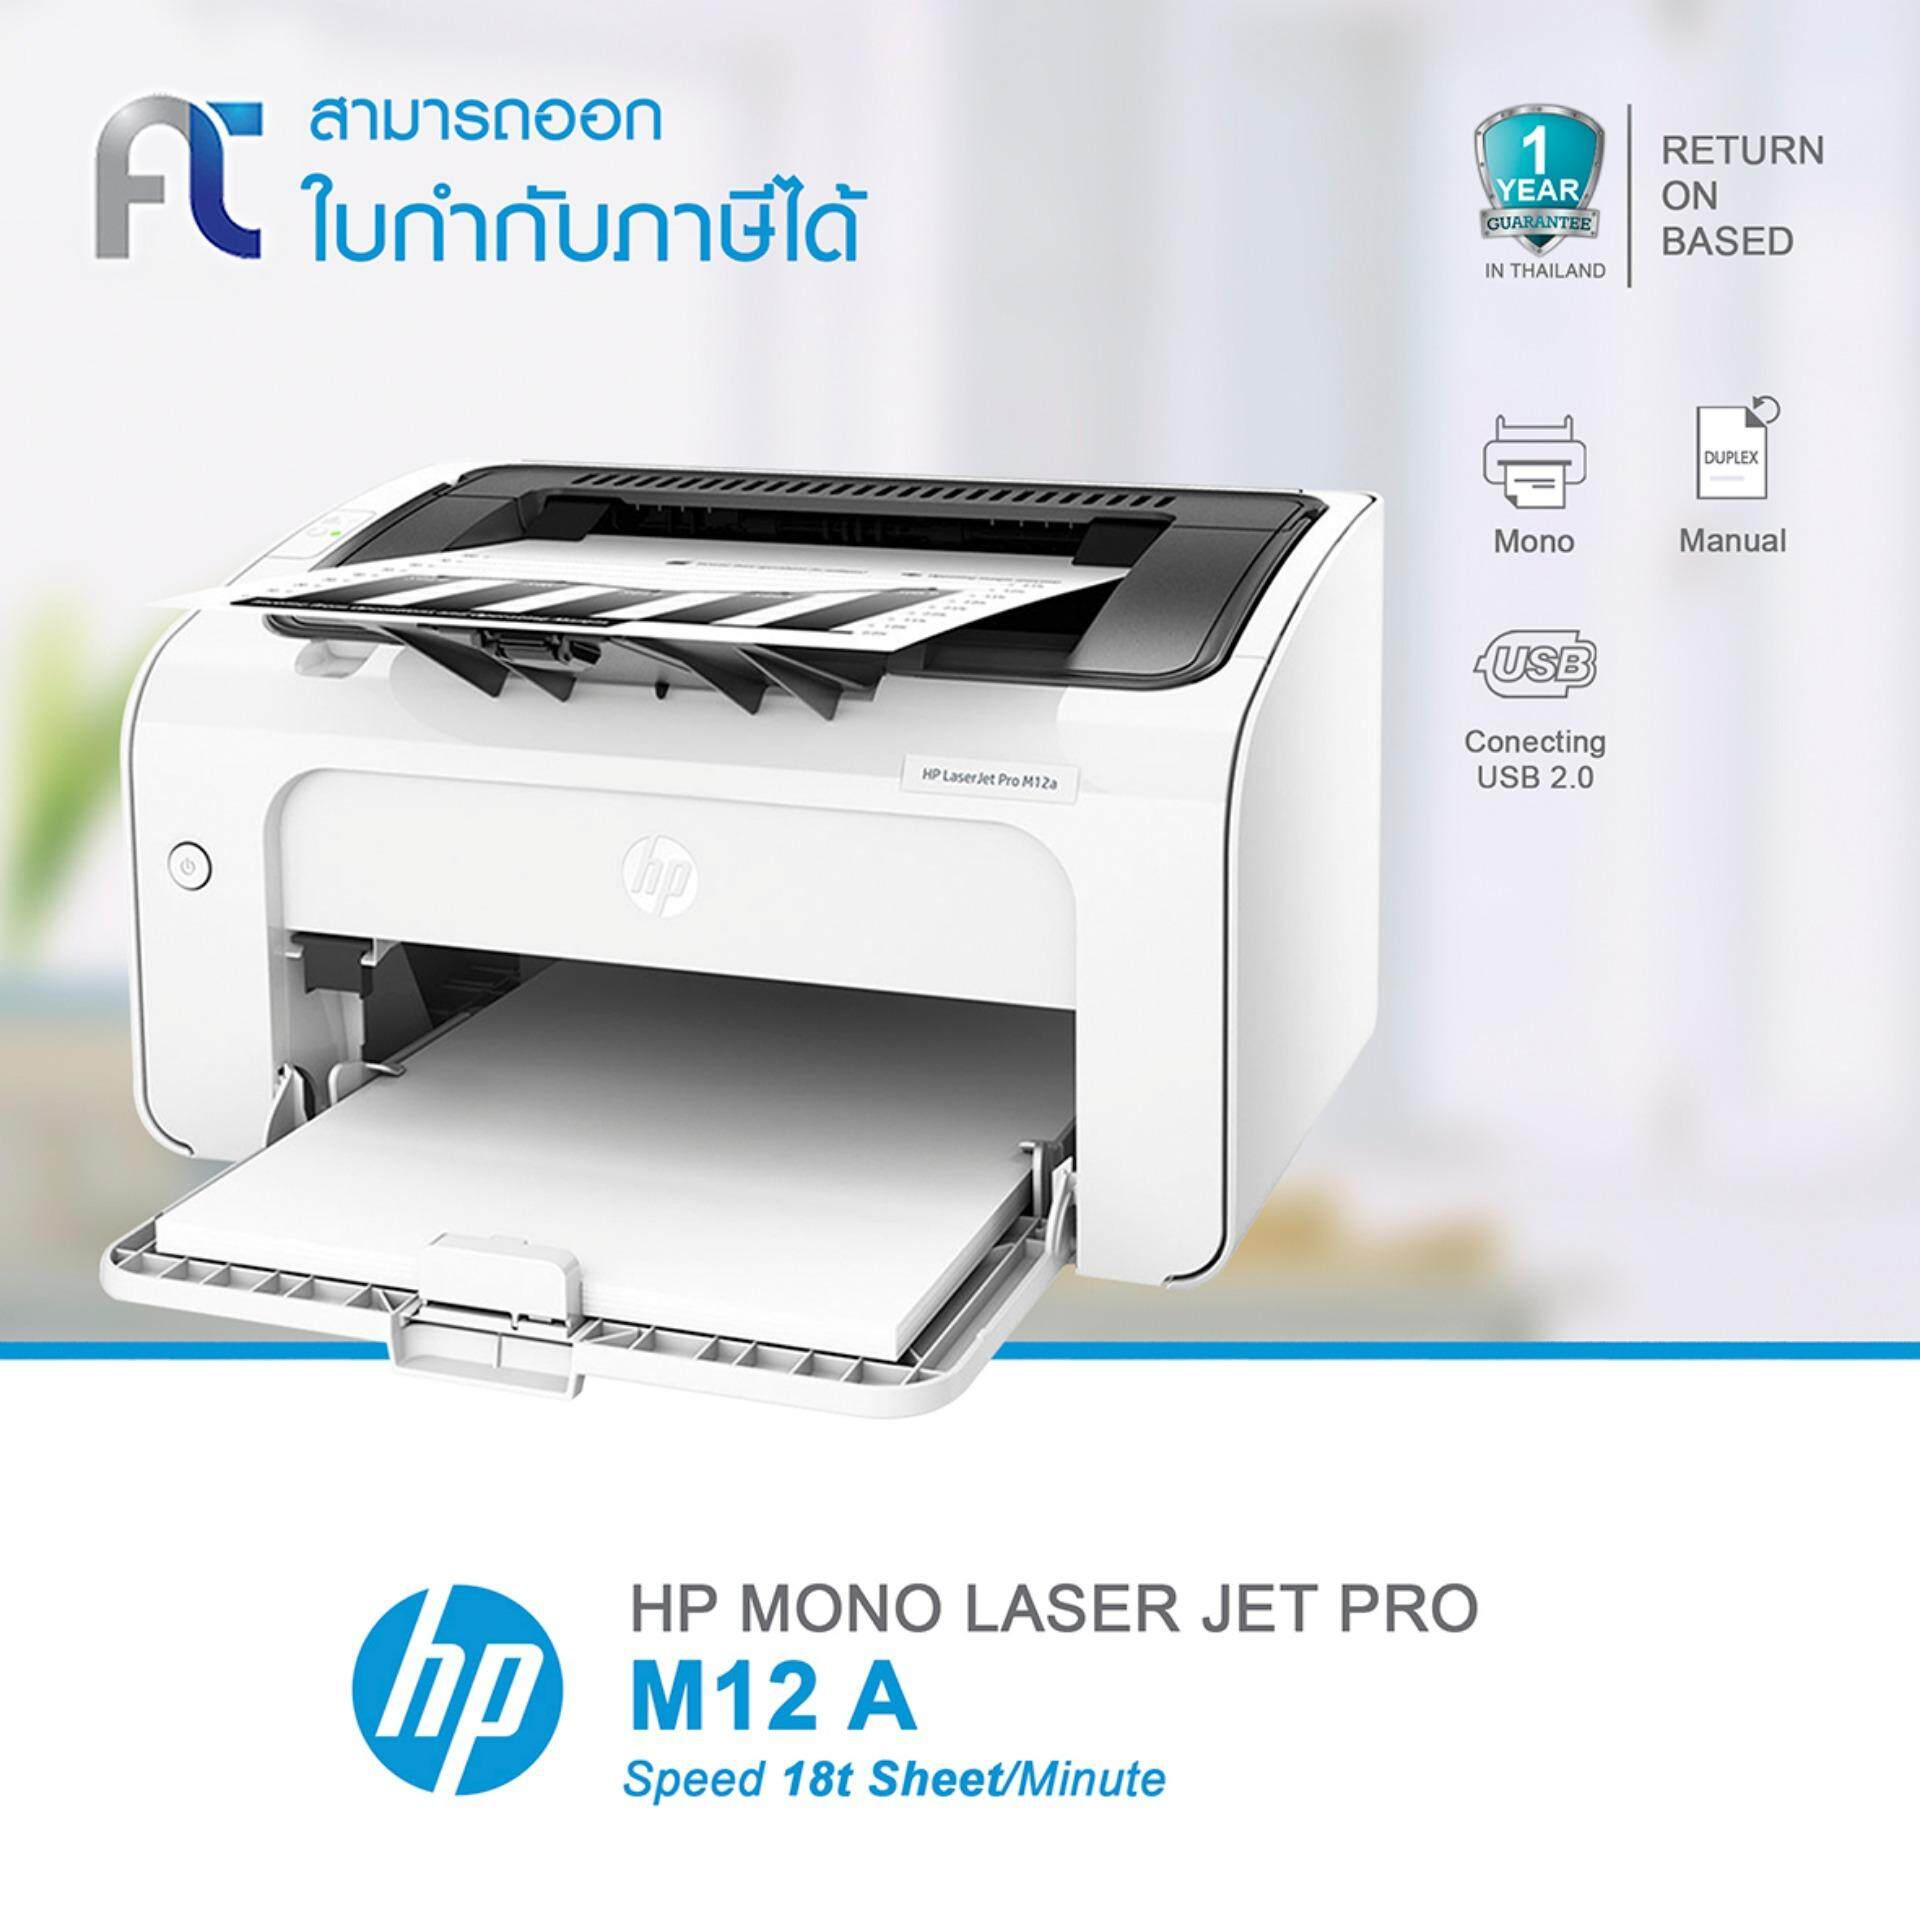 ซื้อ 1 Year Warranty Hp Laserjet Pro M12A Printer T0L45A Hp ถูก